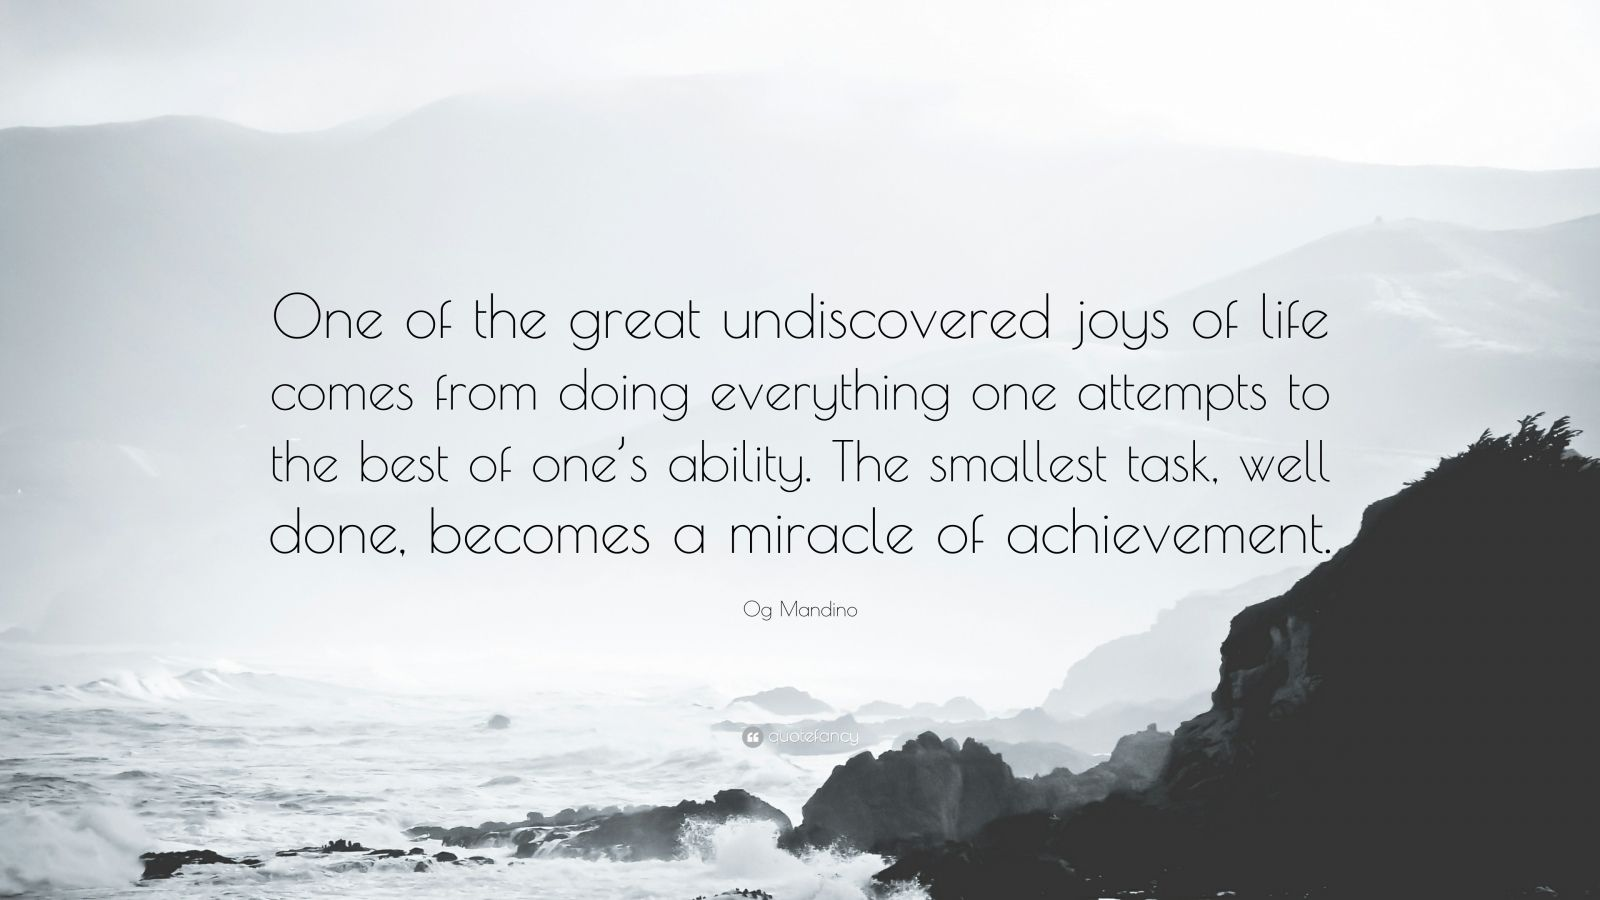 """Og Mandino Quote: """"One of the great undiscovered joys of life comes from doing everything one attempts to the best of one's ability. The smallest task, well done, becomes a miracle of achievement."""""""